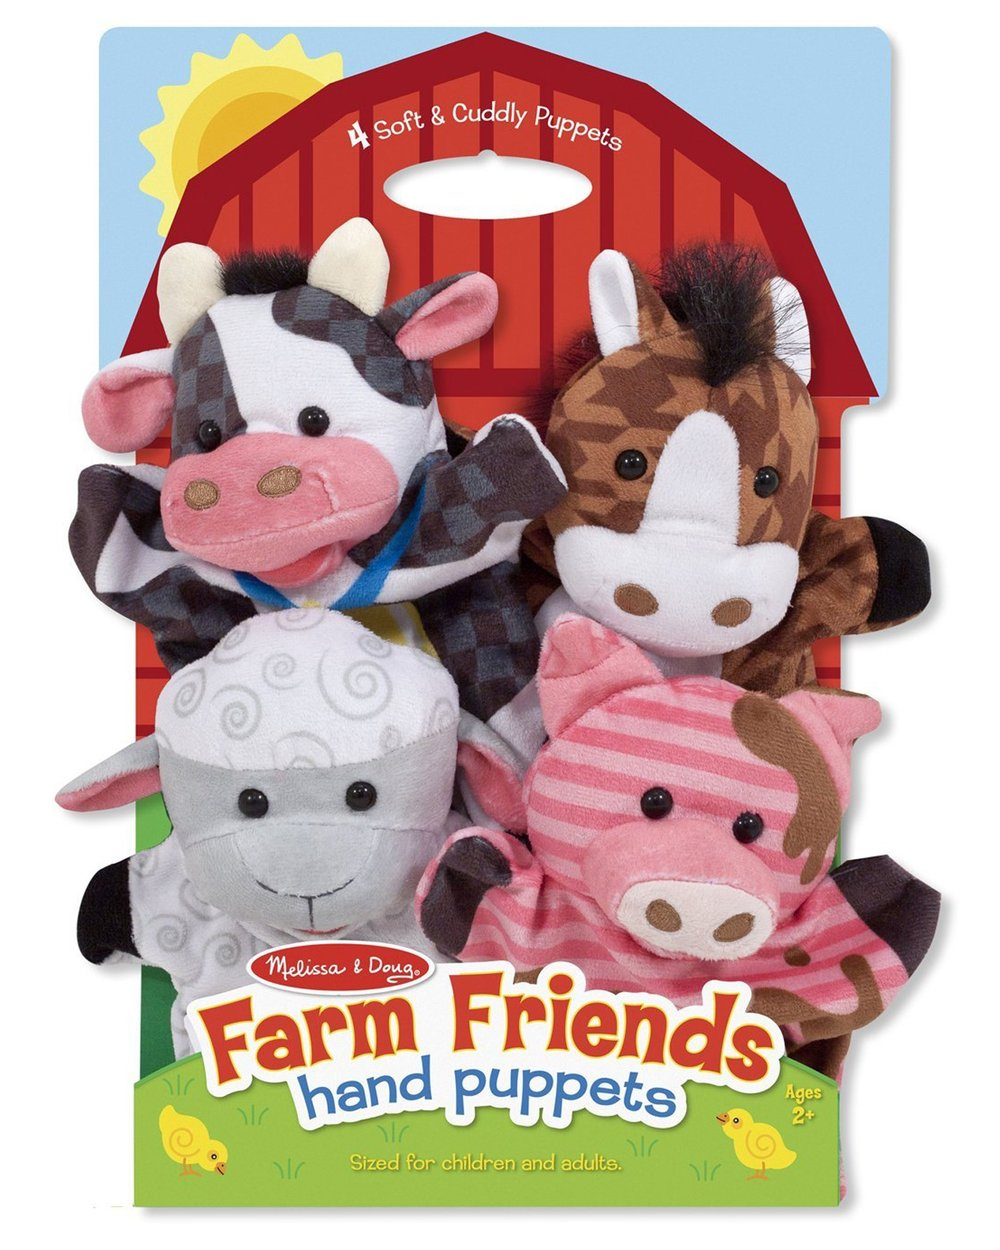 FARM FRIENDS HAND PUPPETS (Melissa & Doug, R295)  This four-piece hand-puppet set makes it easy for children and caregivers to role-play together! Four simple glove puppets in a coordinated farm theme can act out a scene together, or be used separately for simple puppet play. Either way, they are great for developing motor skills, hand-eye coordination, communication skills, self-confidence, parent-child bonding, and so much more. Made with brightly patterned, washable fabrics and built to last, these soft and friendly hand puppets are sure to be go-to toys for years to come. Farm Friends Hand Puppets includes a sheep, cow, pig, and horse.  Suitable for ages 2 years and older and sized for children and adults.